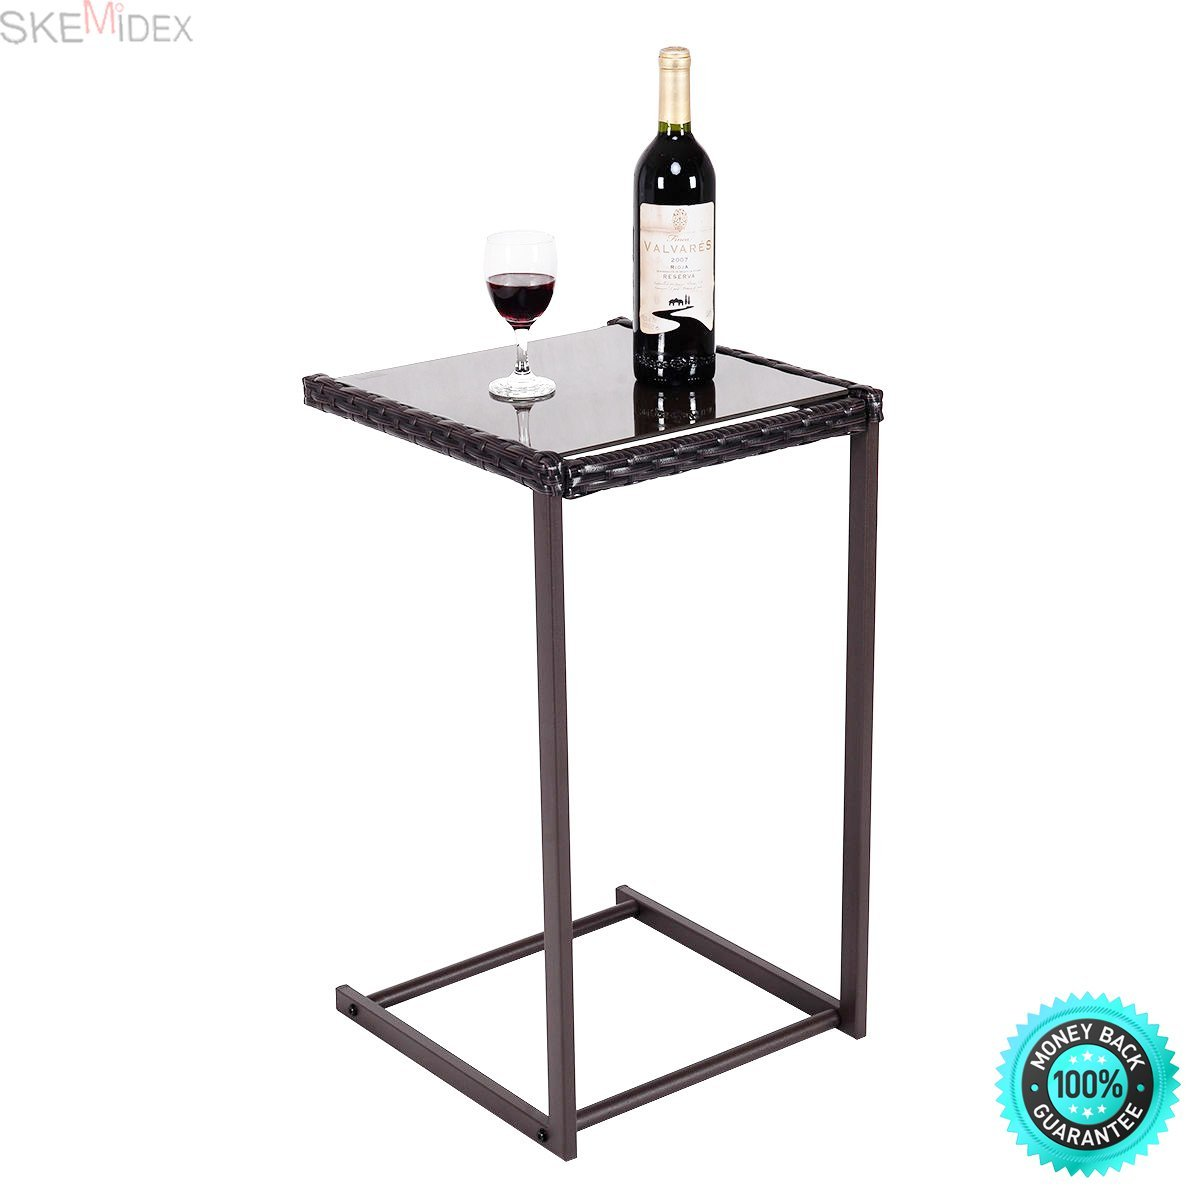 square accent table find line glass get quotations skemidex brown coffee tray side sofa end rattan wicker mosaic garden furniture grey gloss nest tables mirror ikea occassional